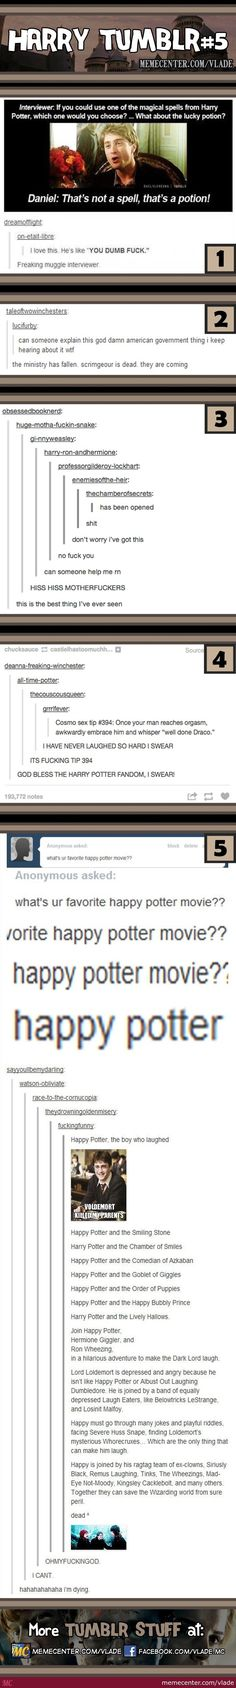 *slow clap for the Harry Potter fandom* again <<<*pffft* that was hilarious!! *standing ovation for potter fandom*